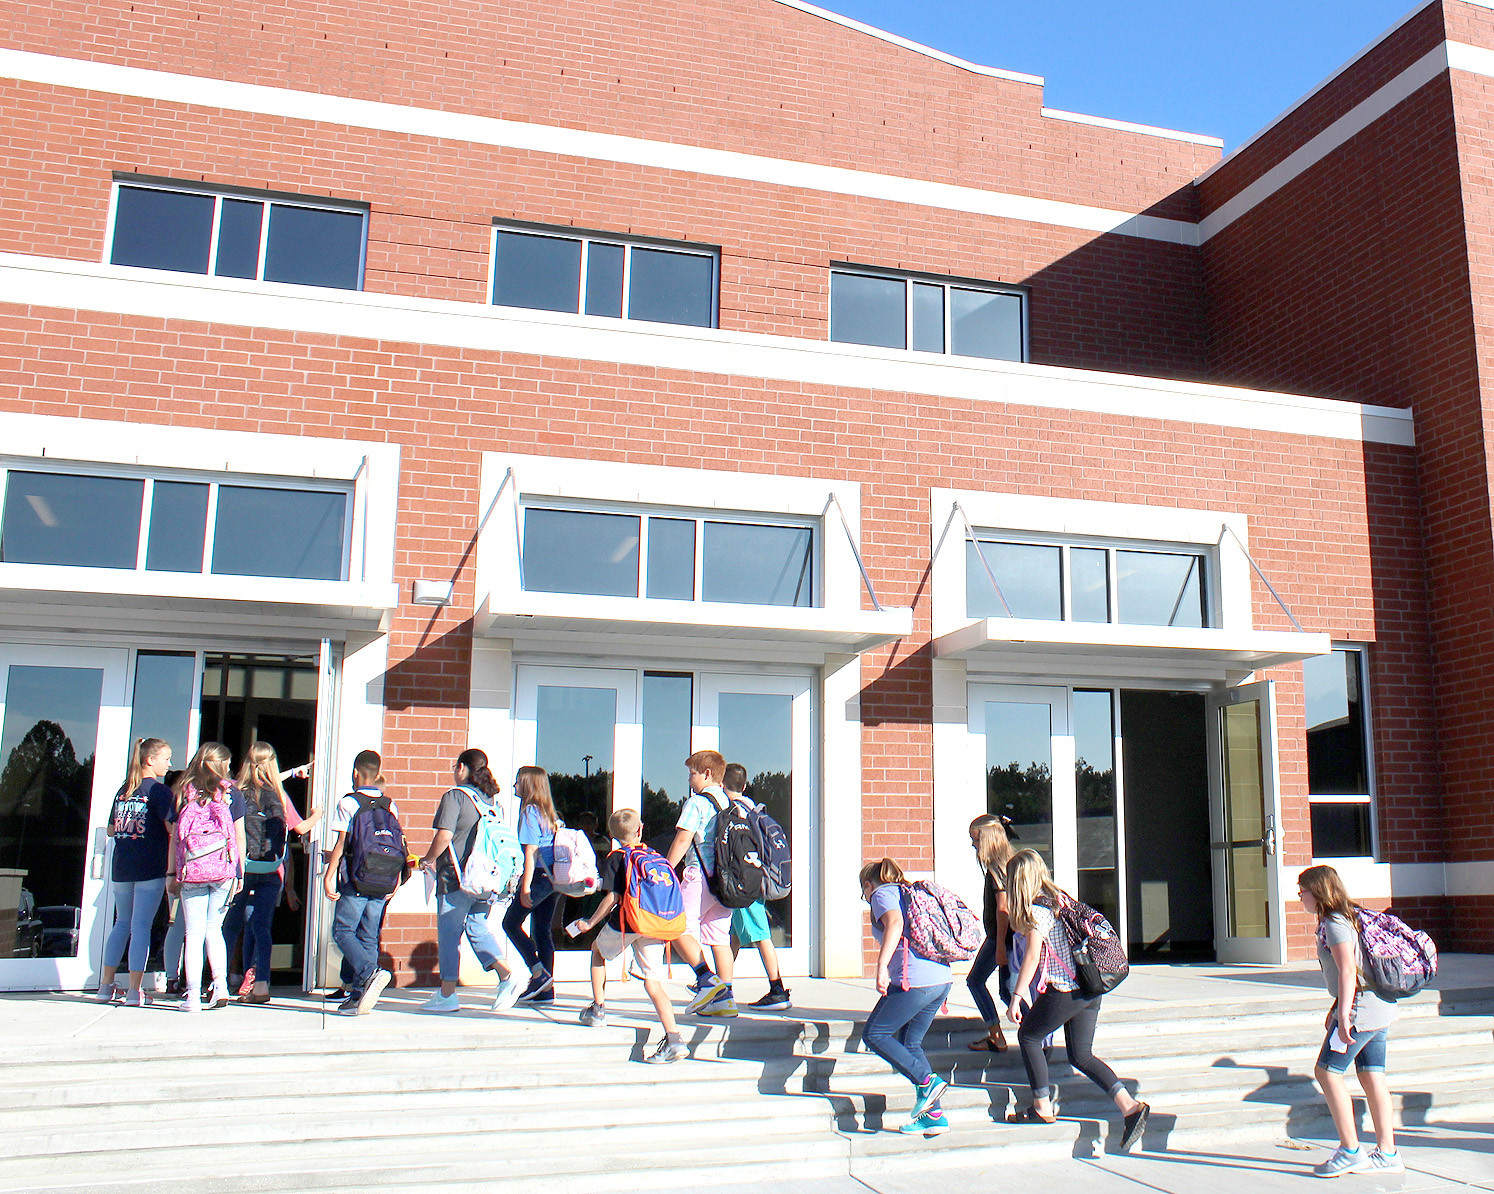 EAGER students head to class inside Lake Forest Middle School's new academic building, which was completed just in time for the first day of school Tuesday.